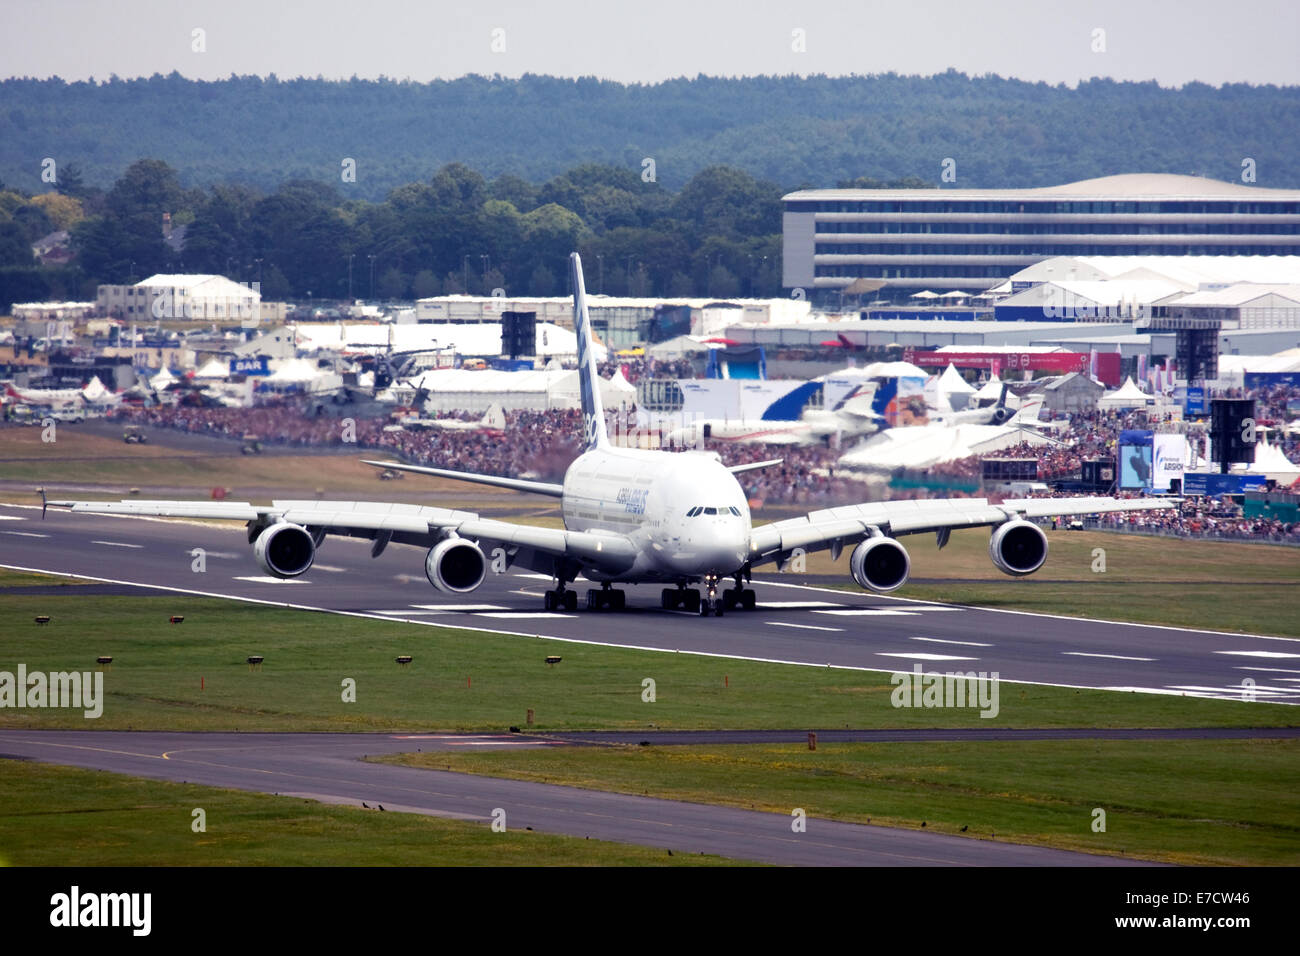 Airbus A380-841 at Farnborough International Airshow 2014 Stock Photo